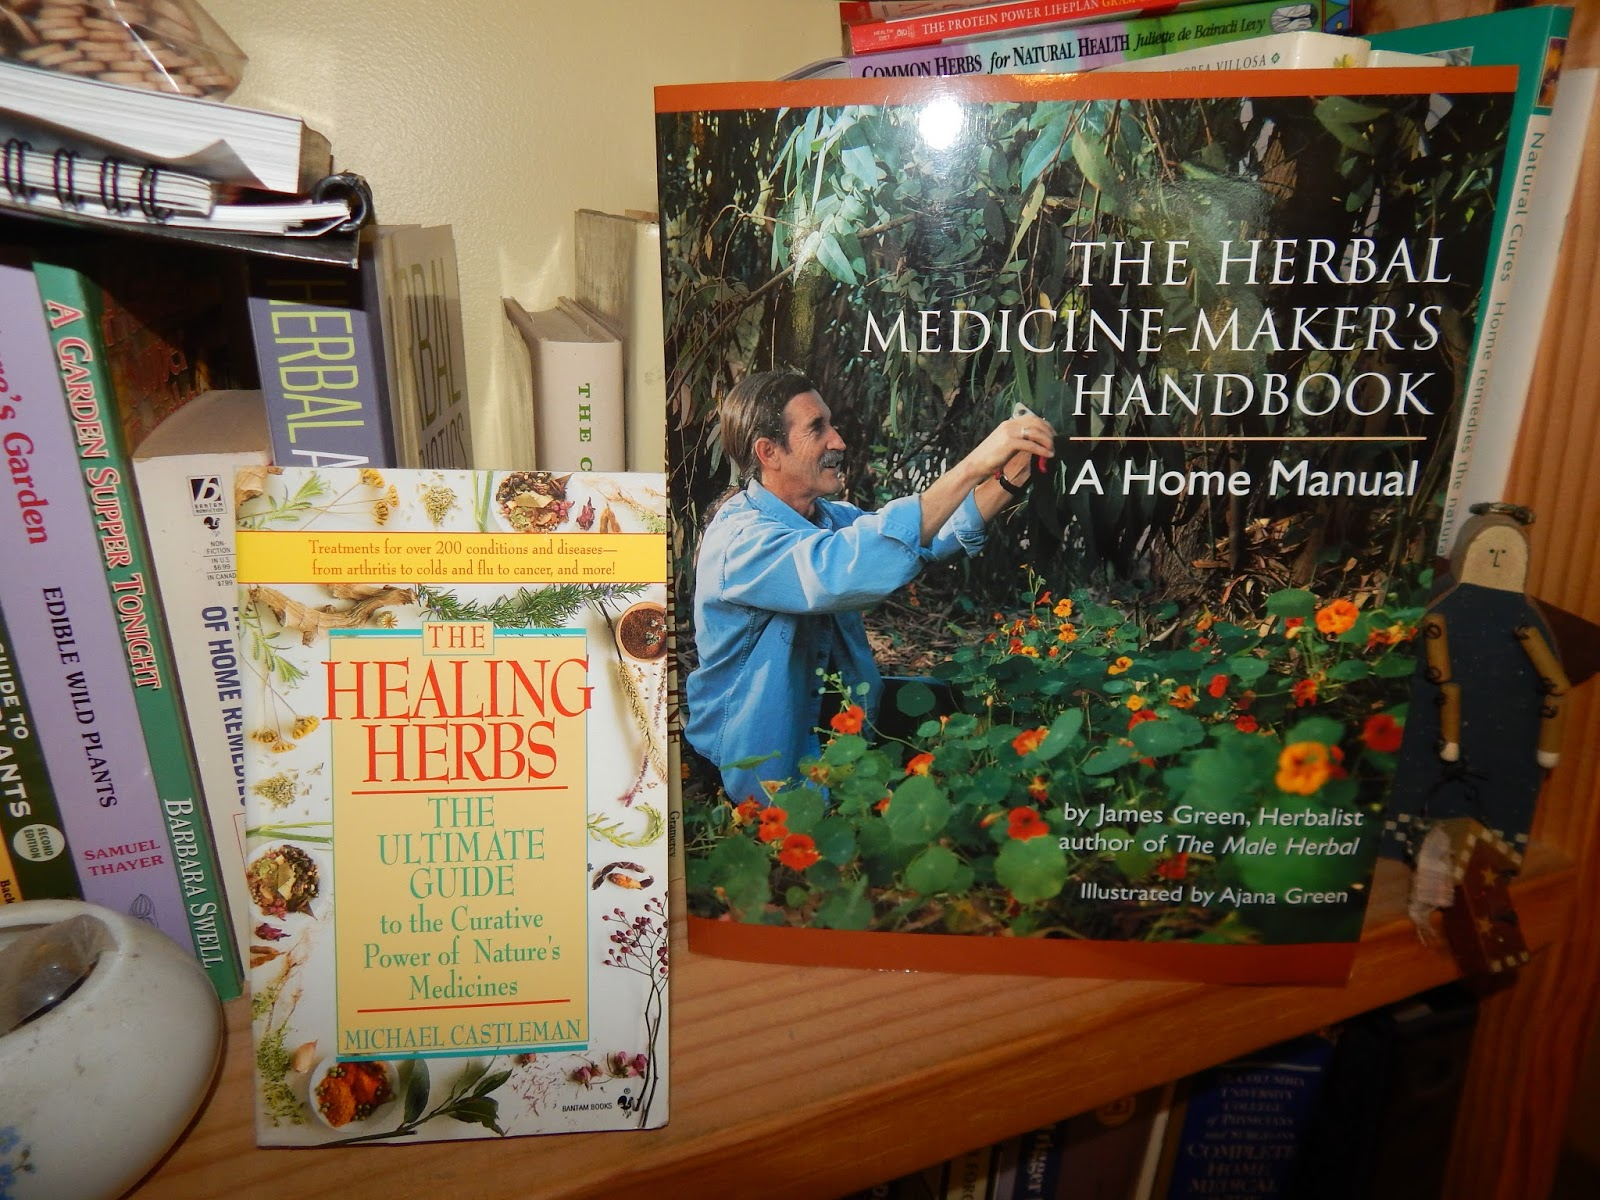 the healing power of herbal medicines Herbalism (also herbal medicine) is the study of botany and use of plants intended for medicinal purposes plants have been the basis for medical treatments through much of human history, and such traditional medicine is still widely practiced today.